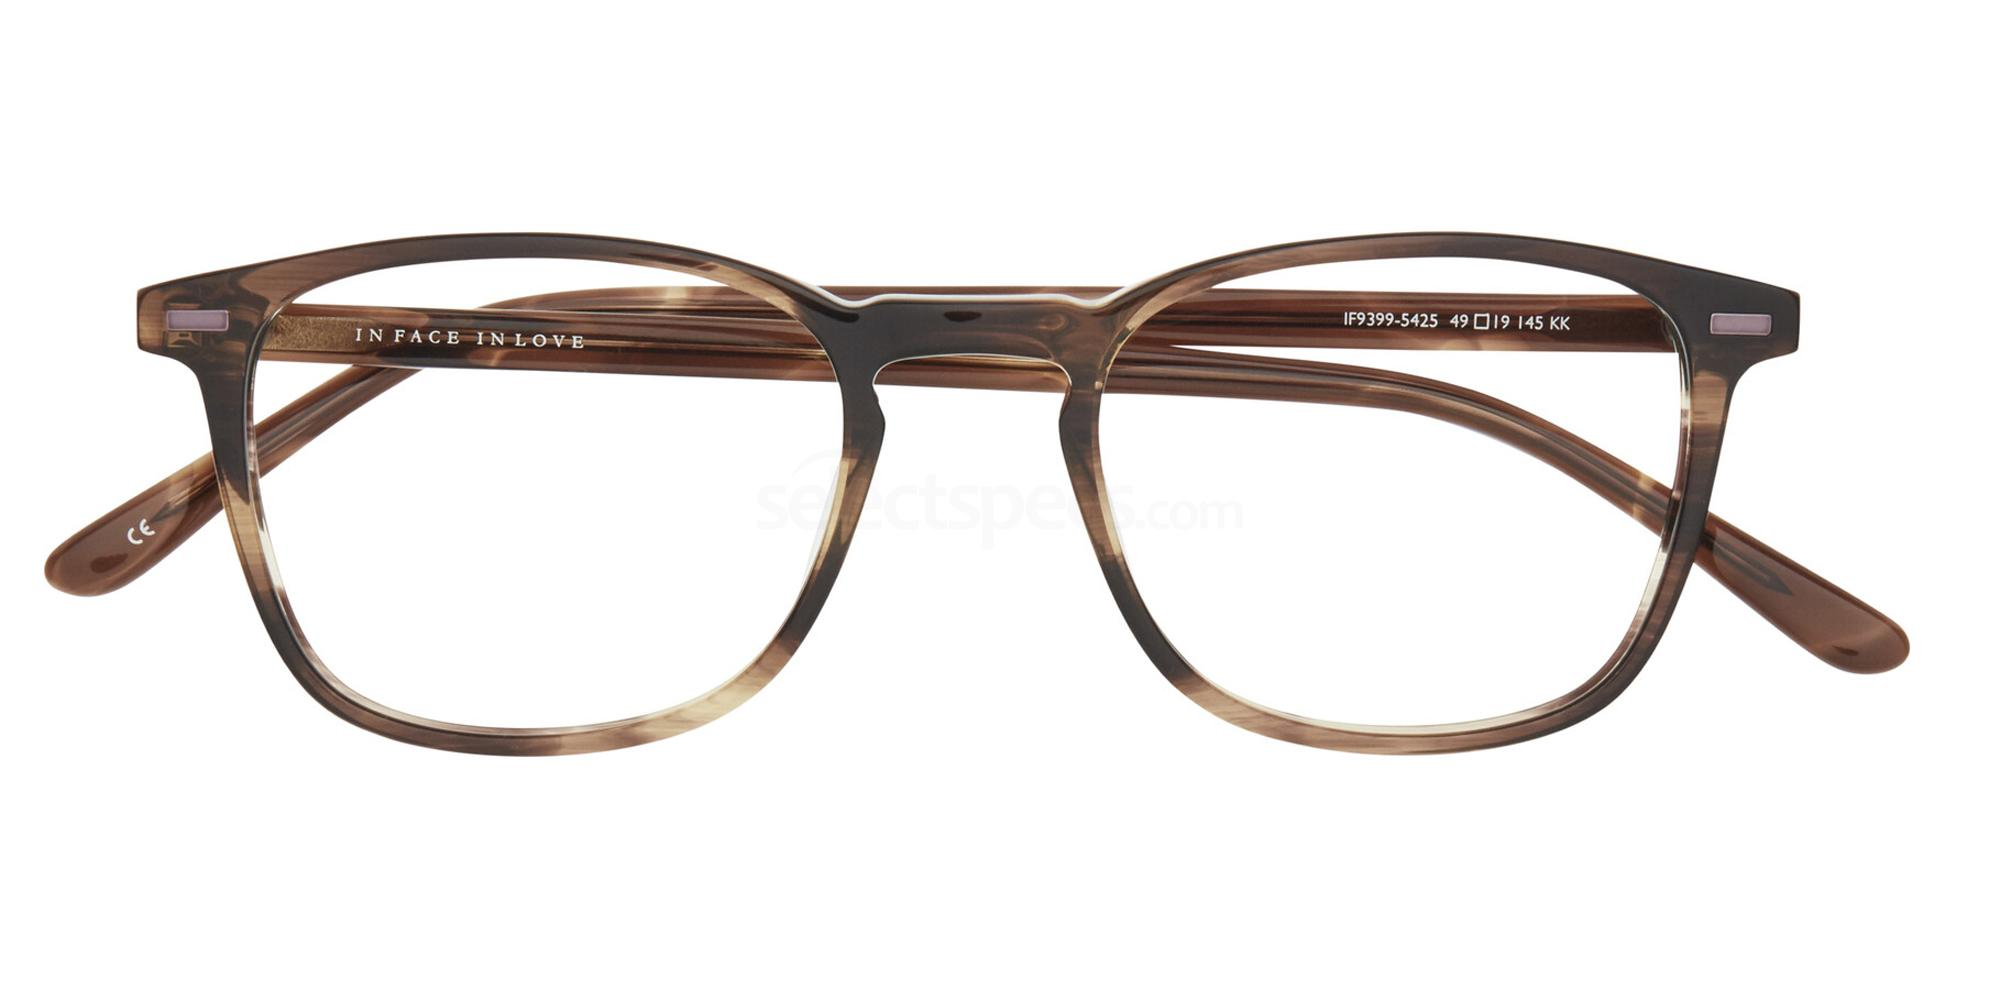 5425 IF9399 Glasses, Inface in Love